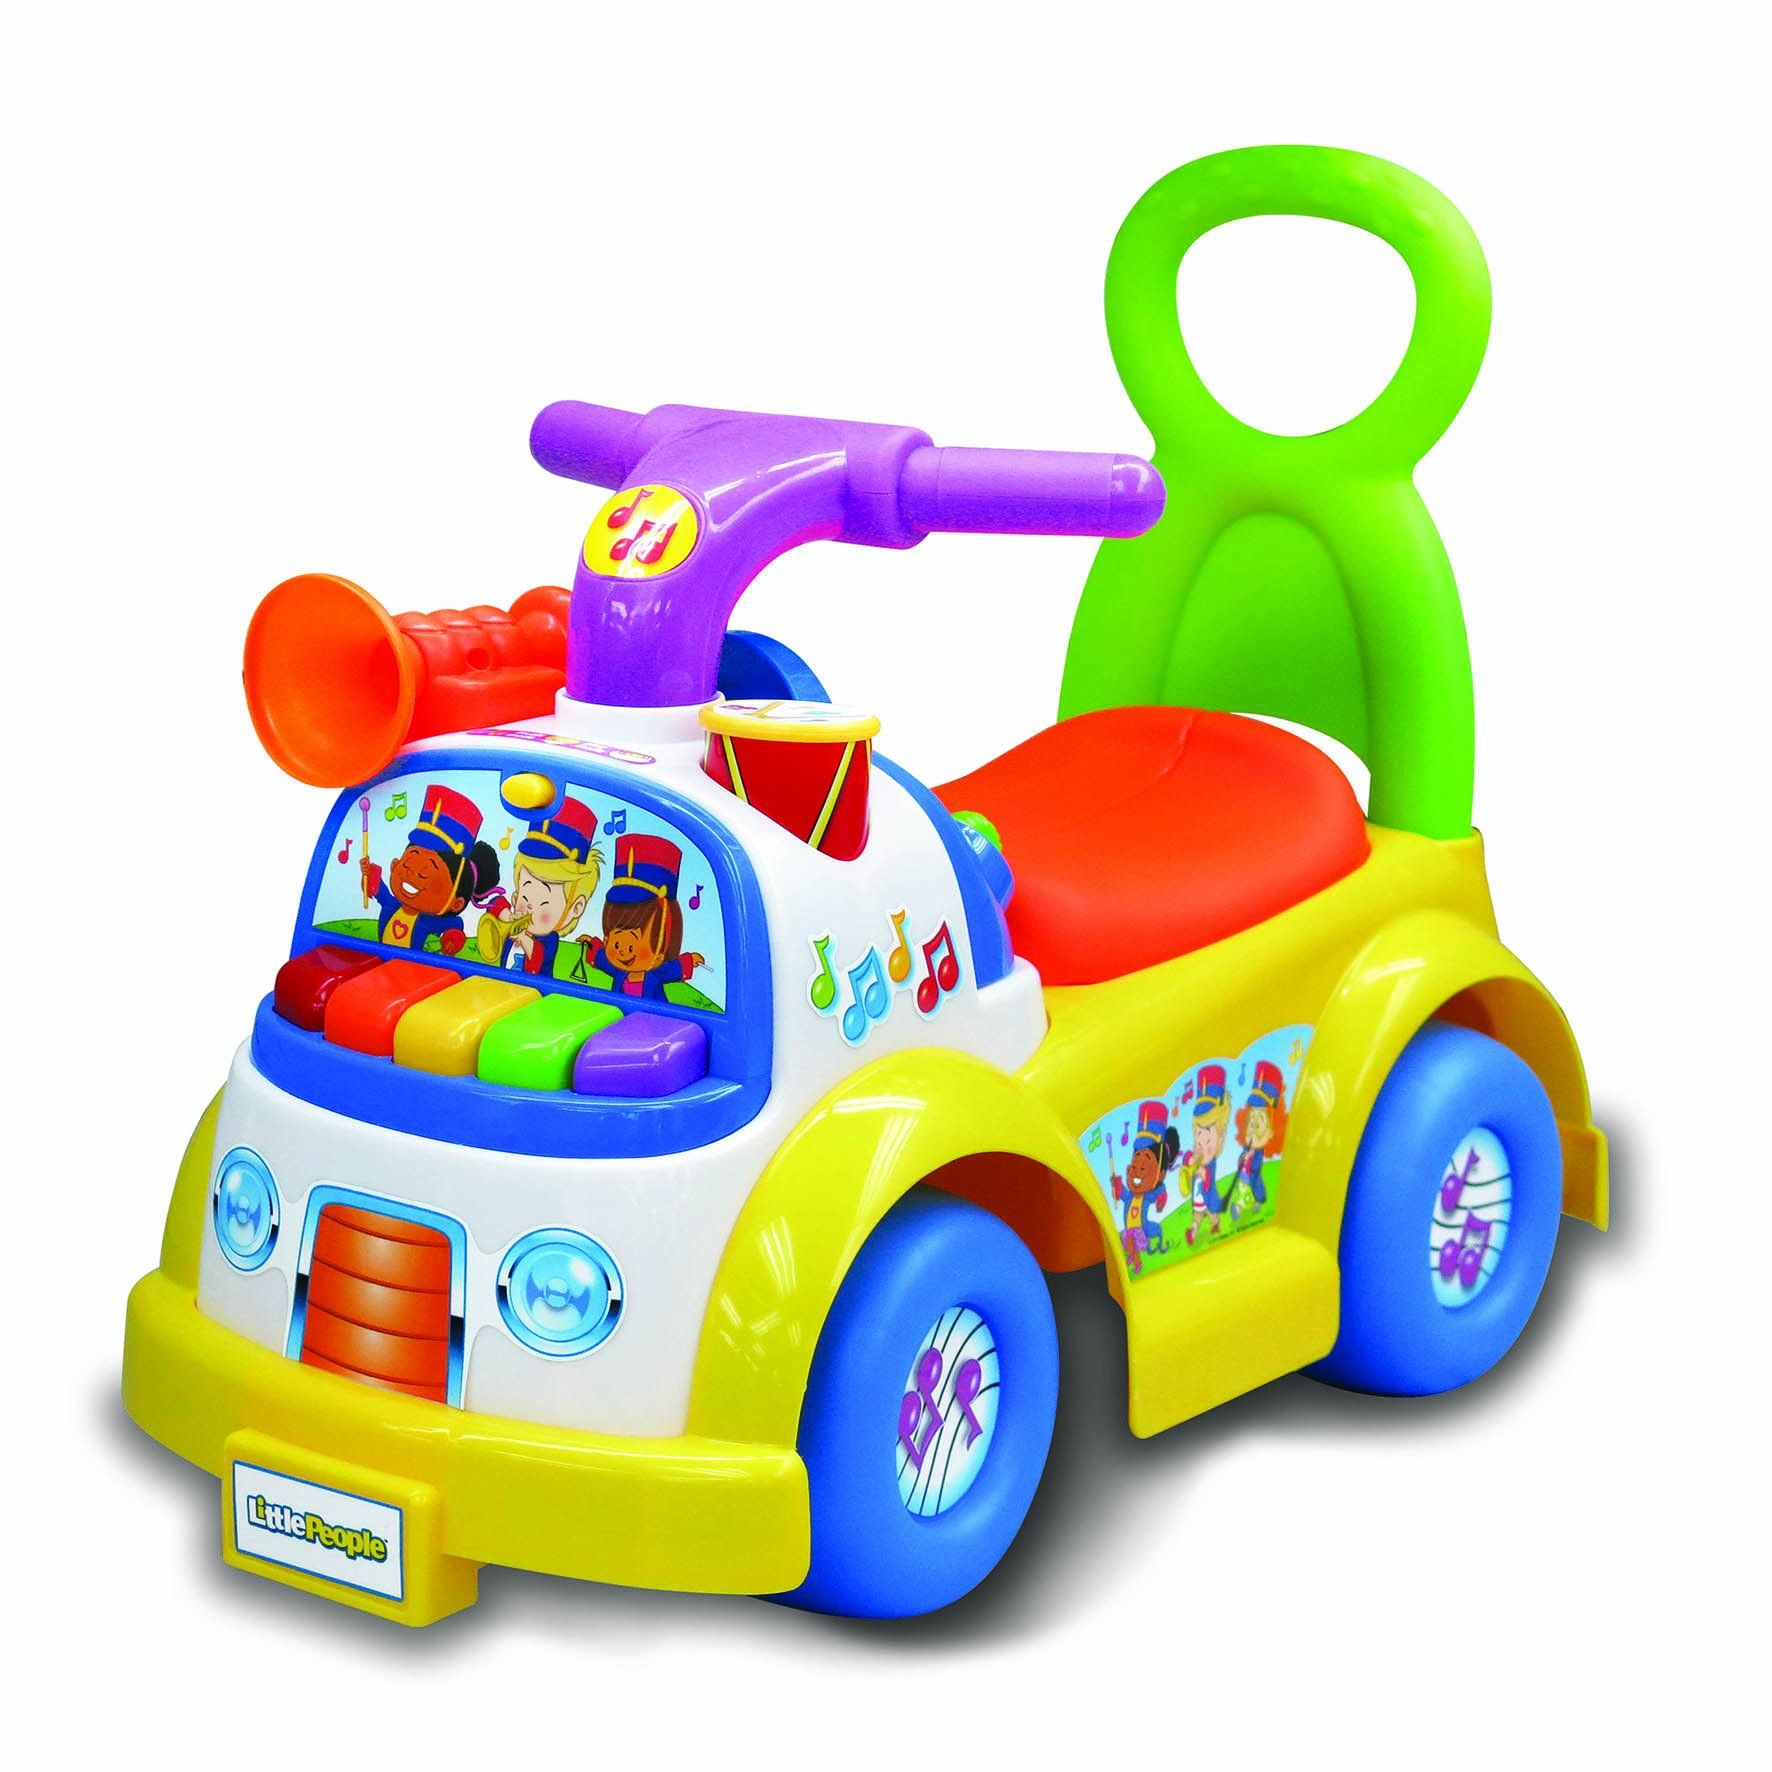 Cool Toys for 1 year old Boys 2019 Birthday Christmas